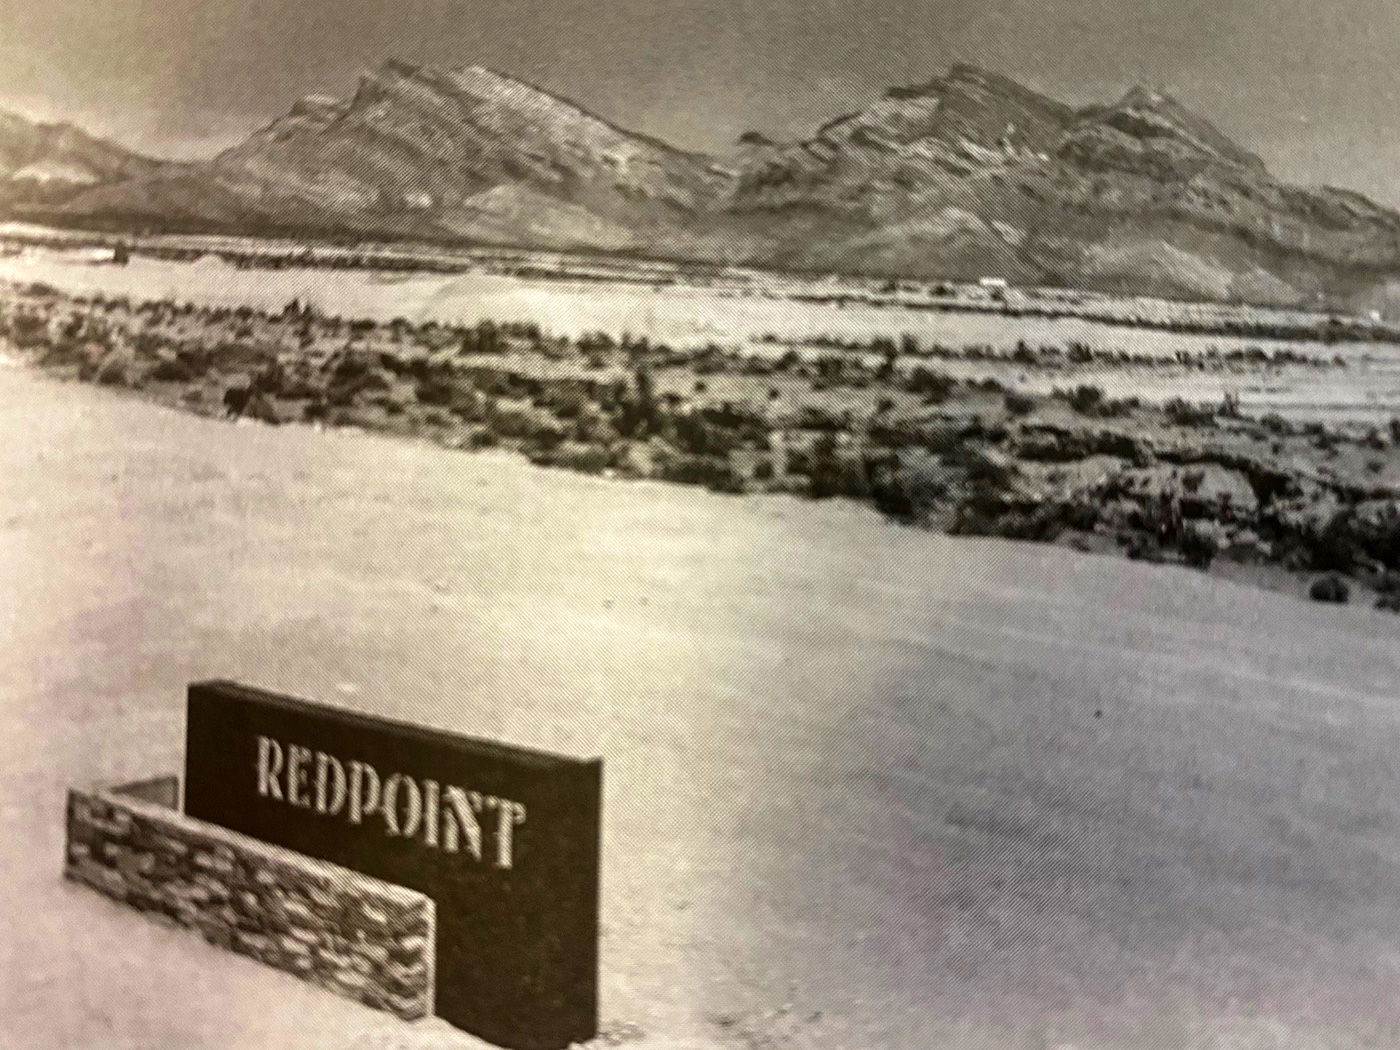 Redpoint Square in Summerlin Las Vegas